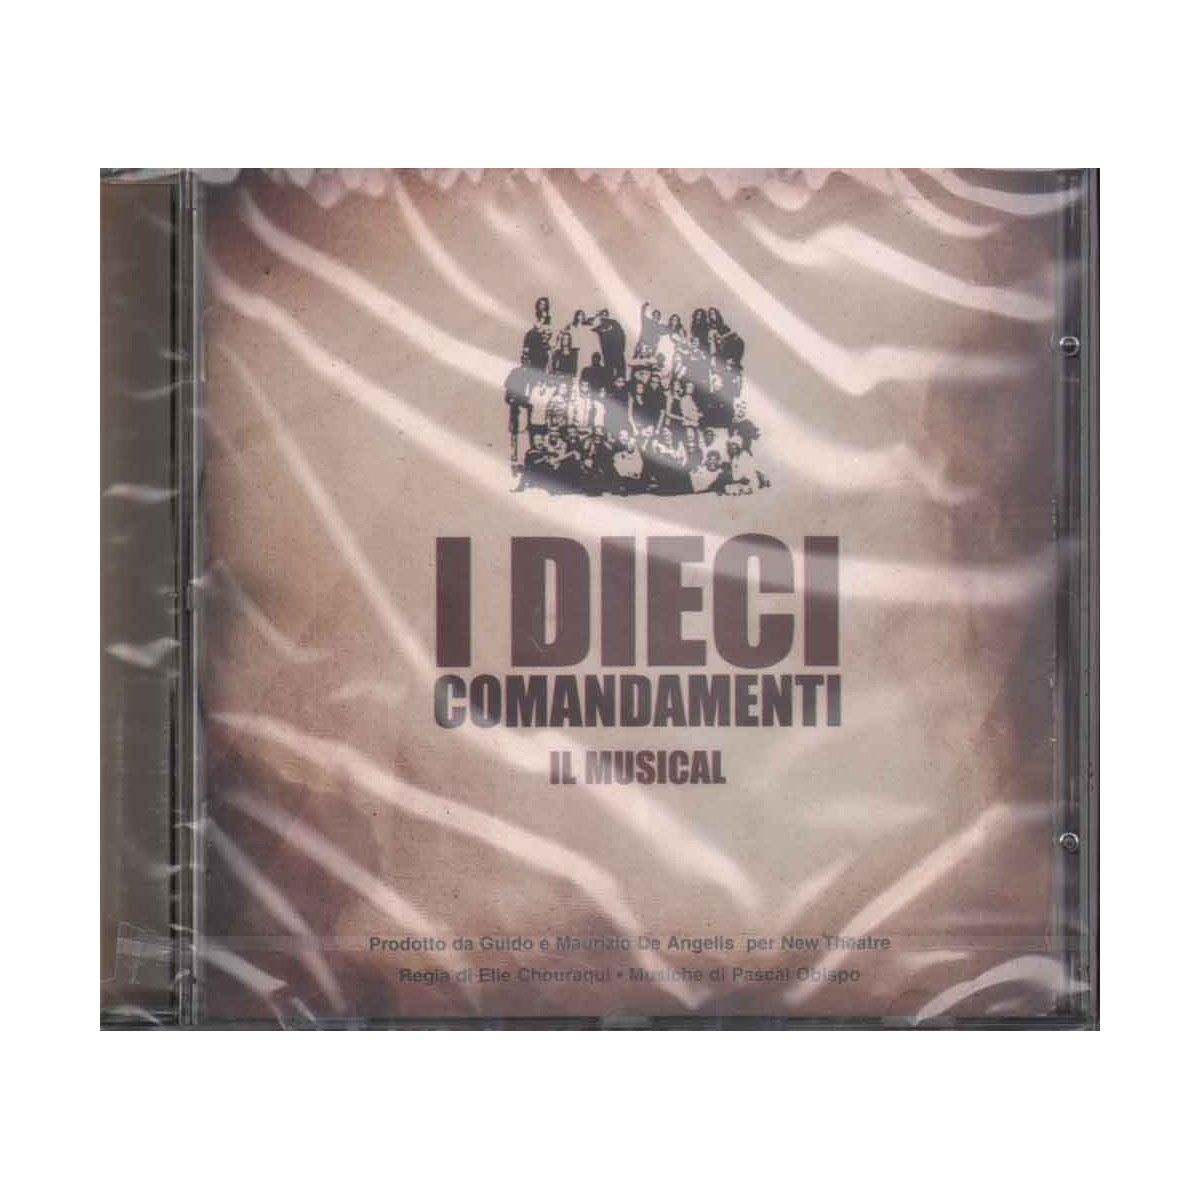 AA.VV. CD I Dieci Comandamenti - Il Musical OST Soundtrack Sigillato 50997511132